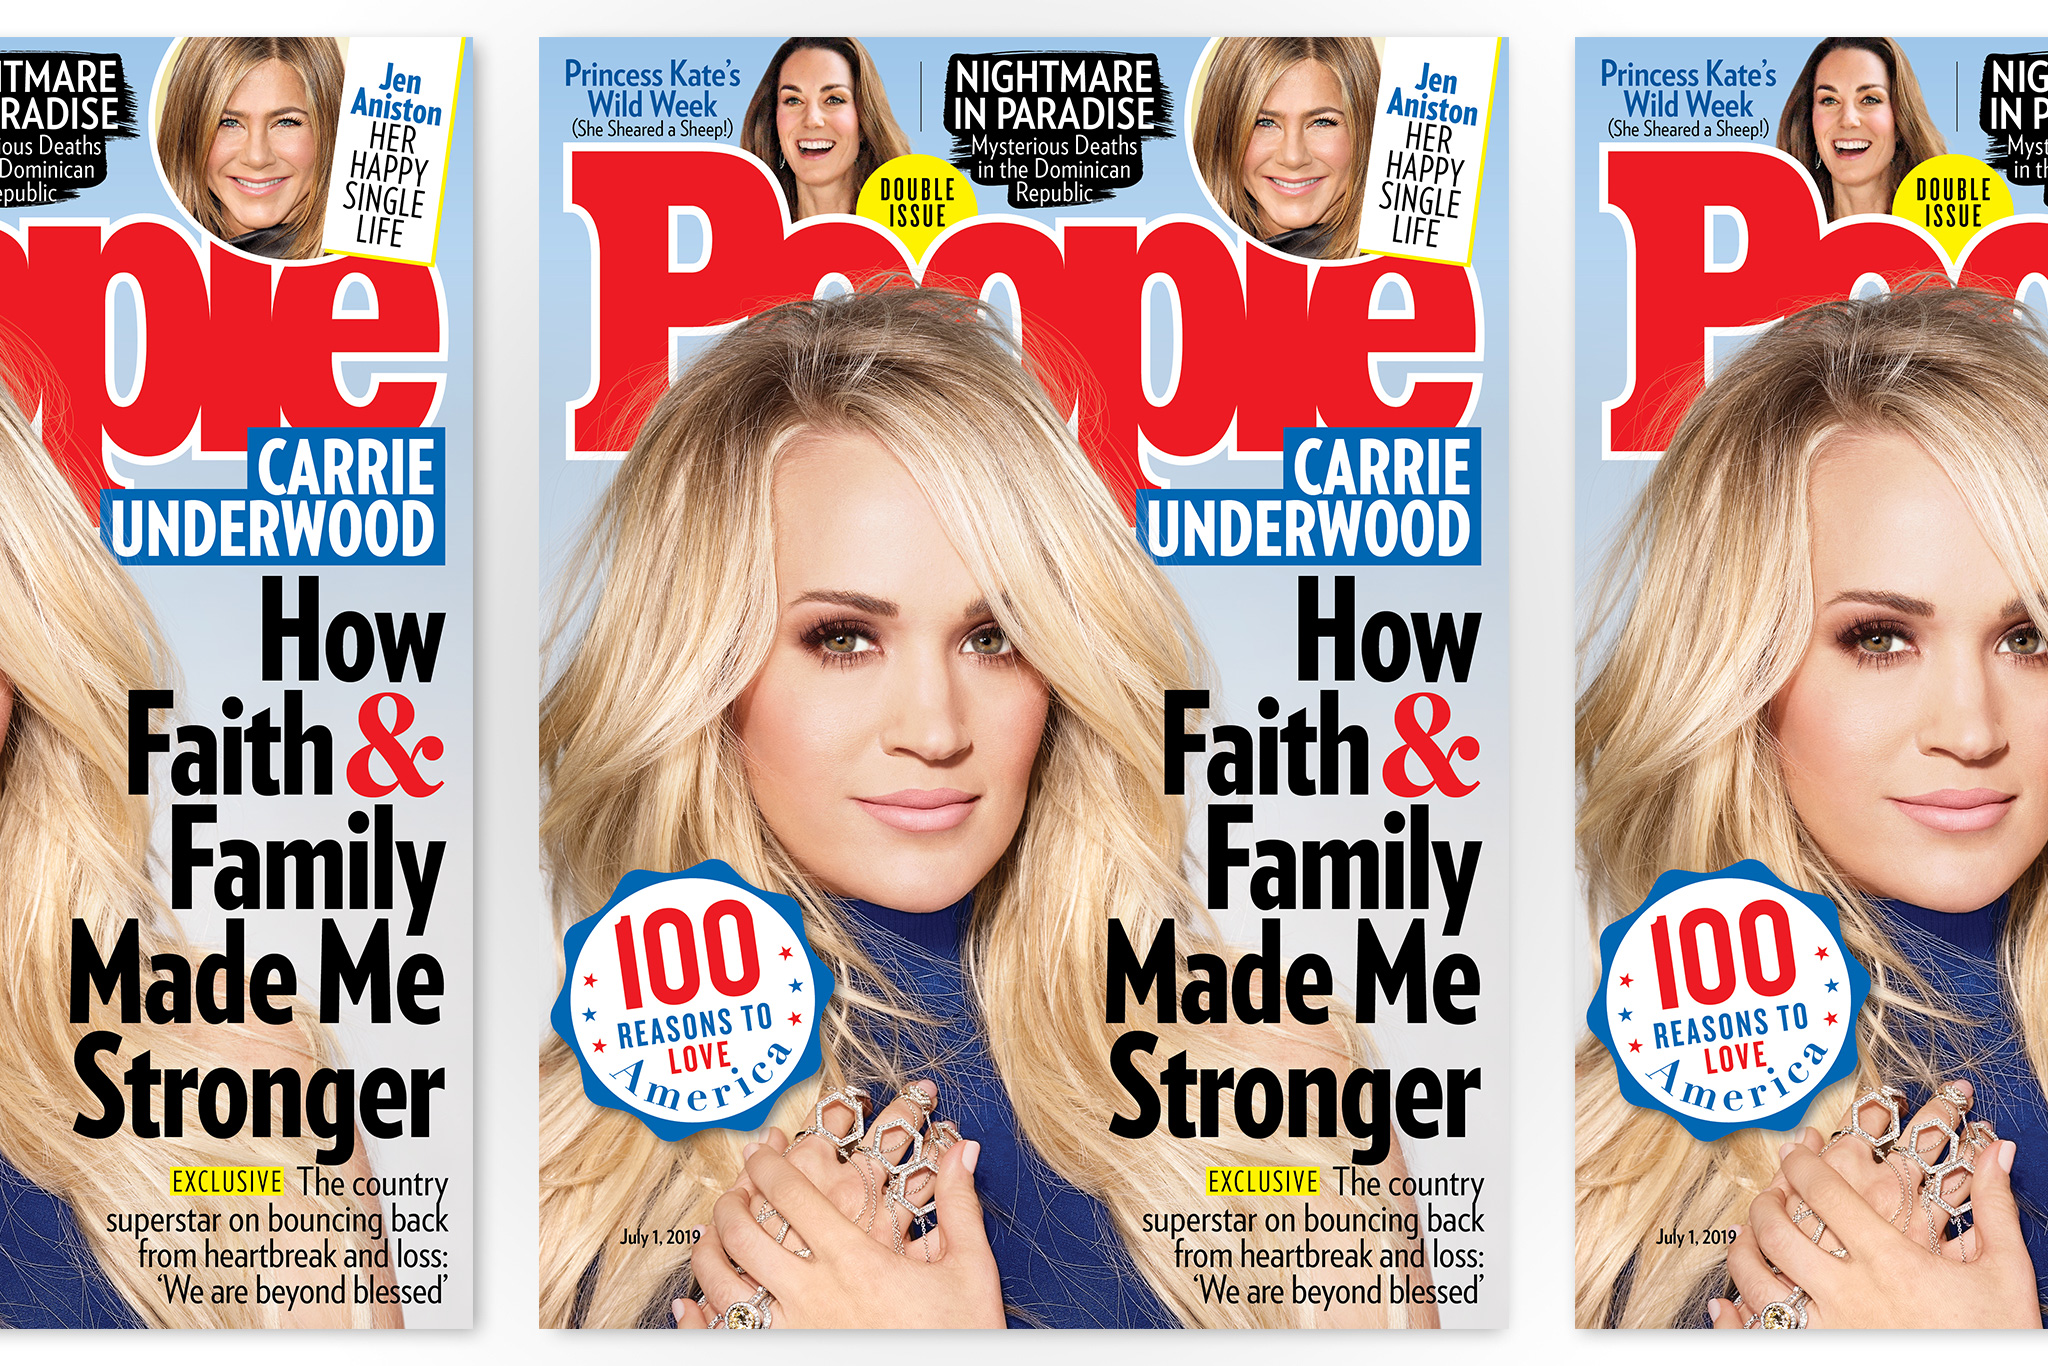 A June 2019 issue of People magazine featuring Carrie Underwood.